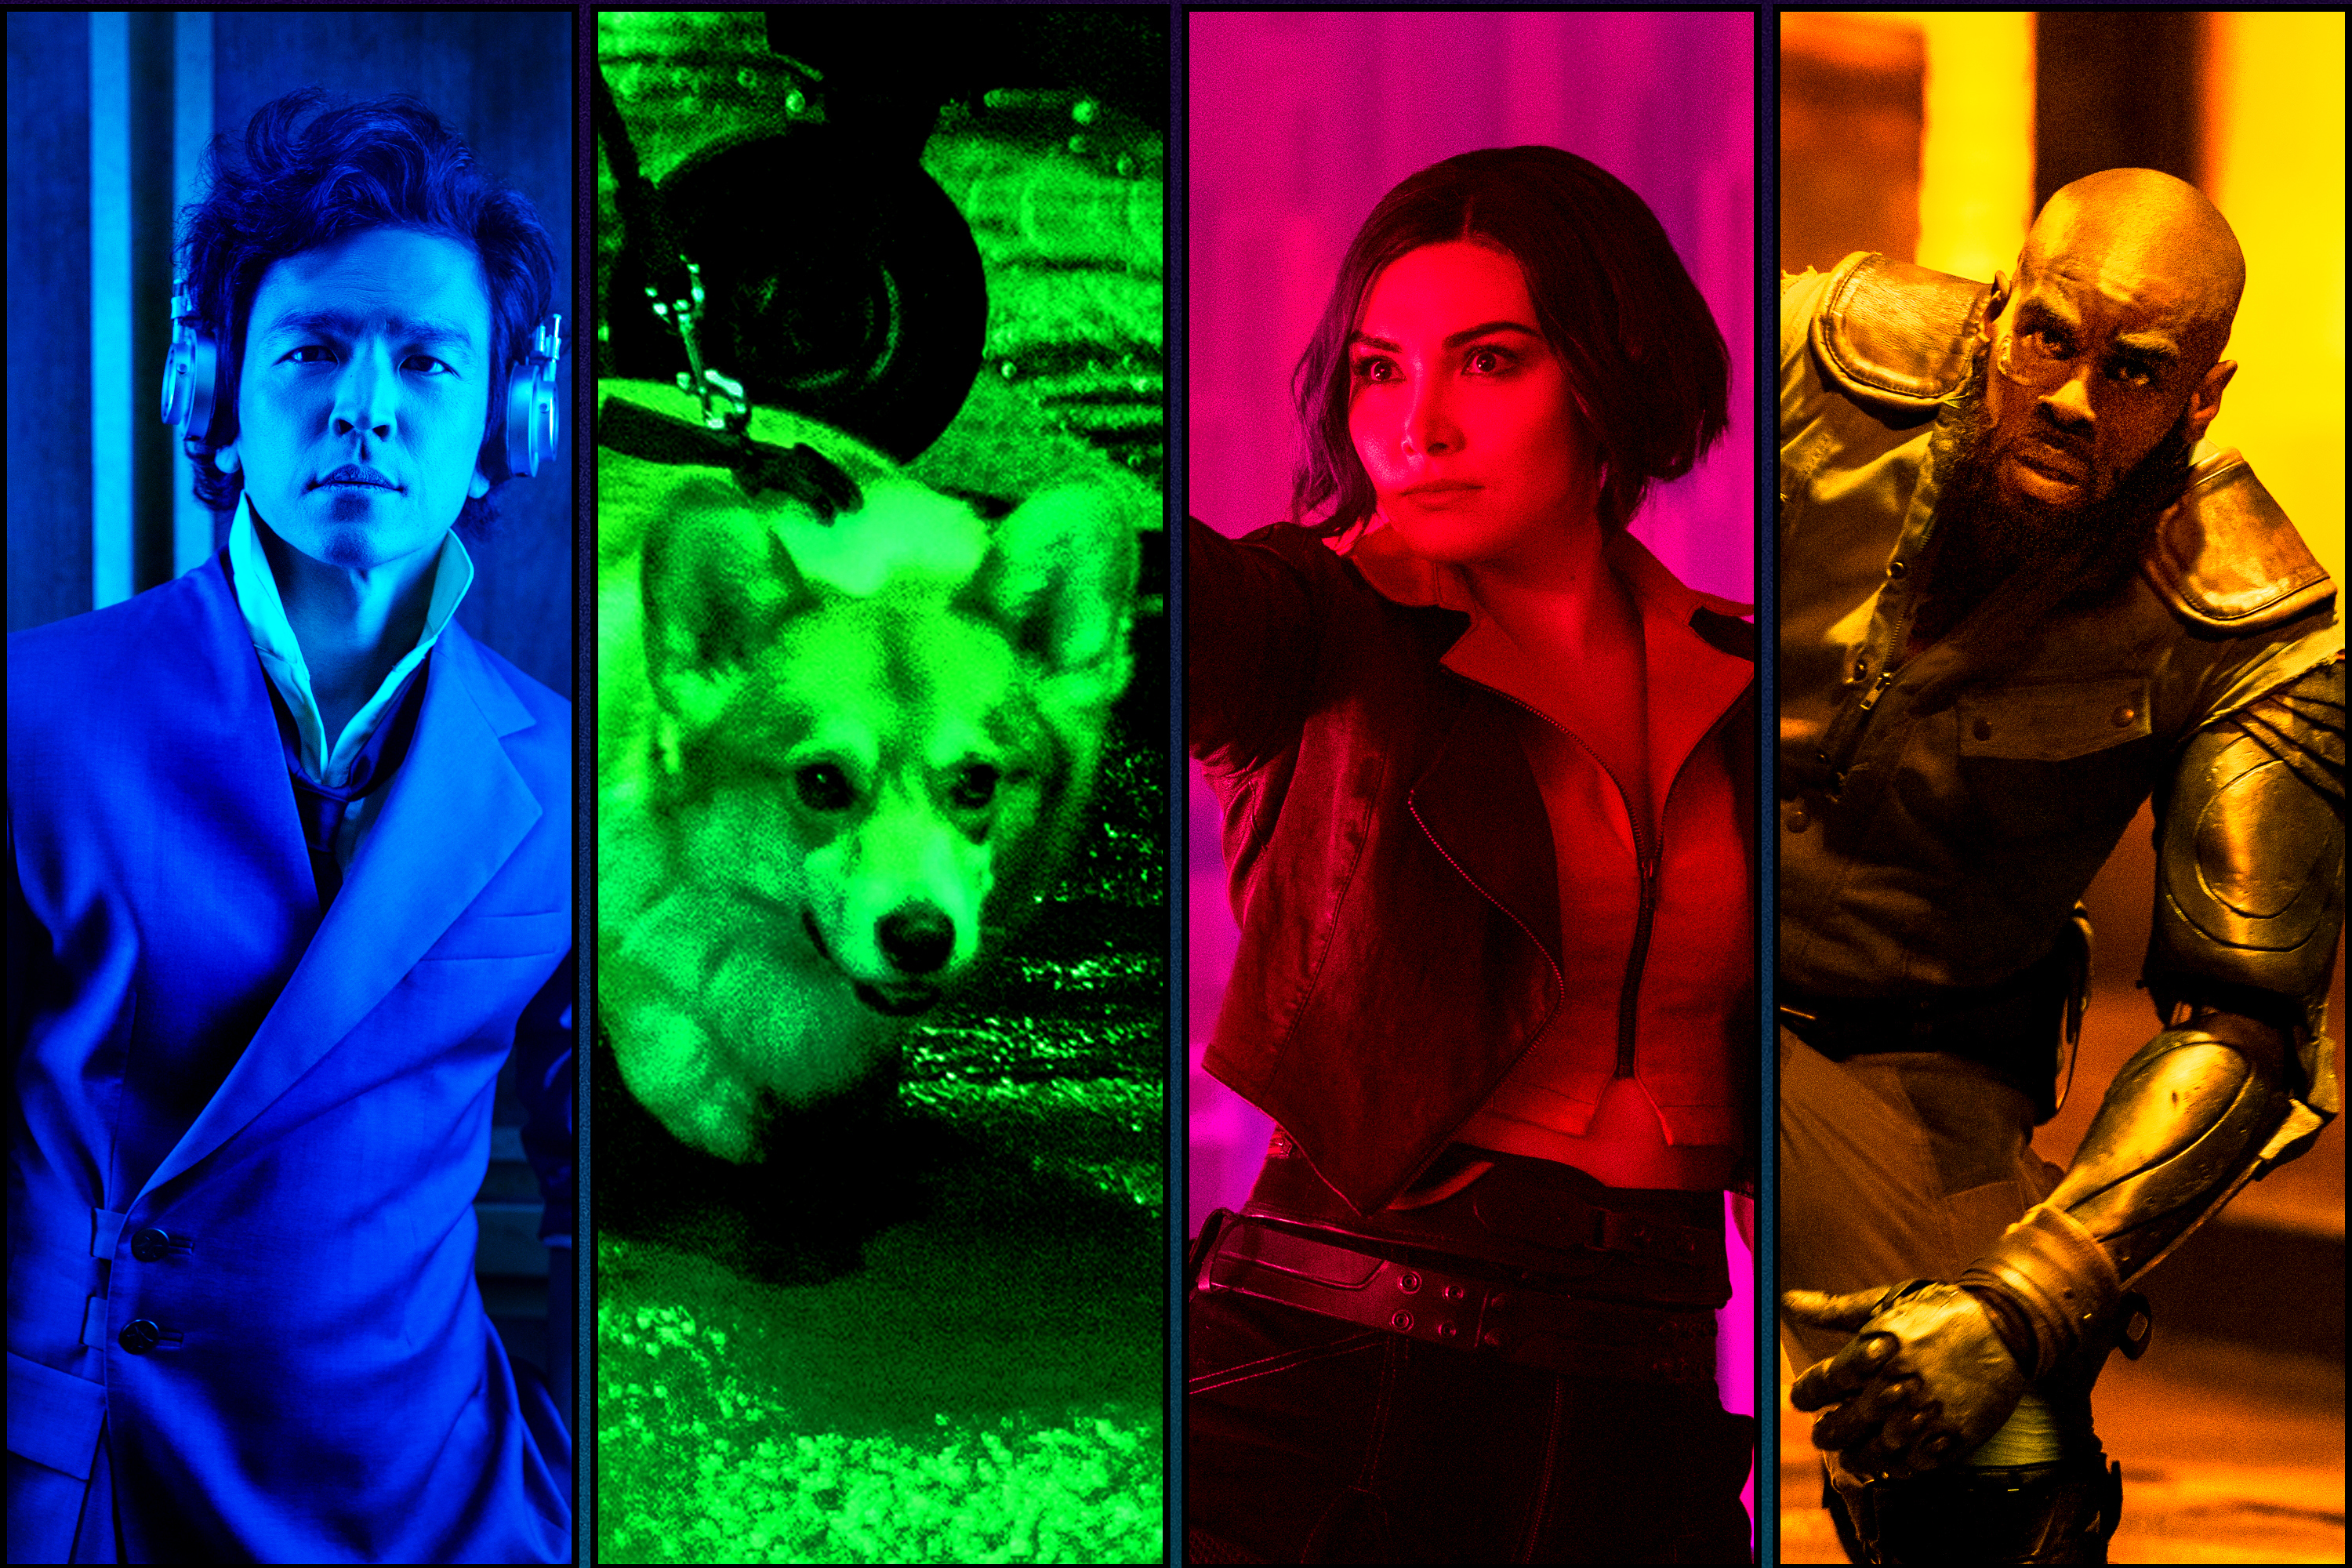 Graphic grid of four brightly colored images from Cowboy Bebop in blue, green, red and yellow